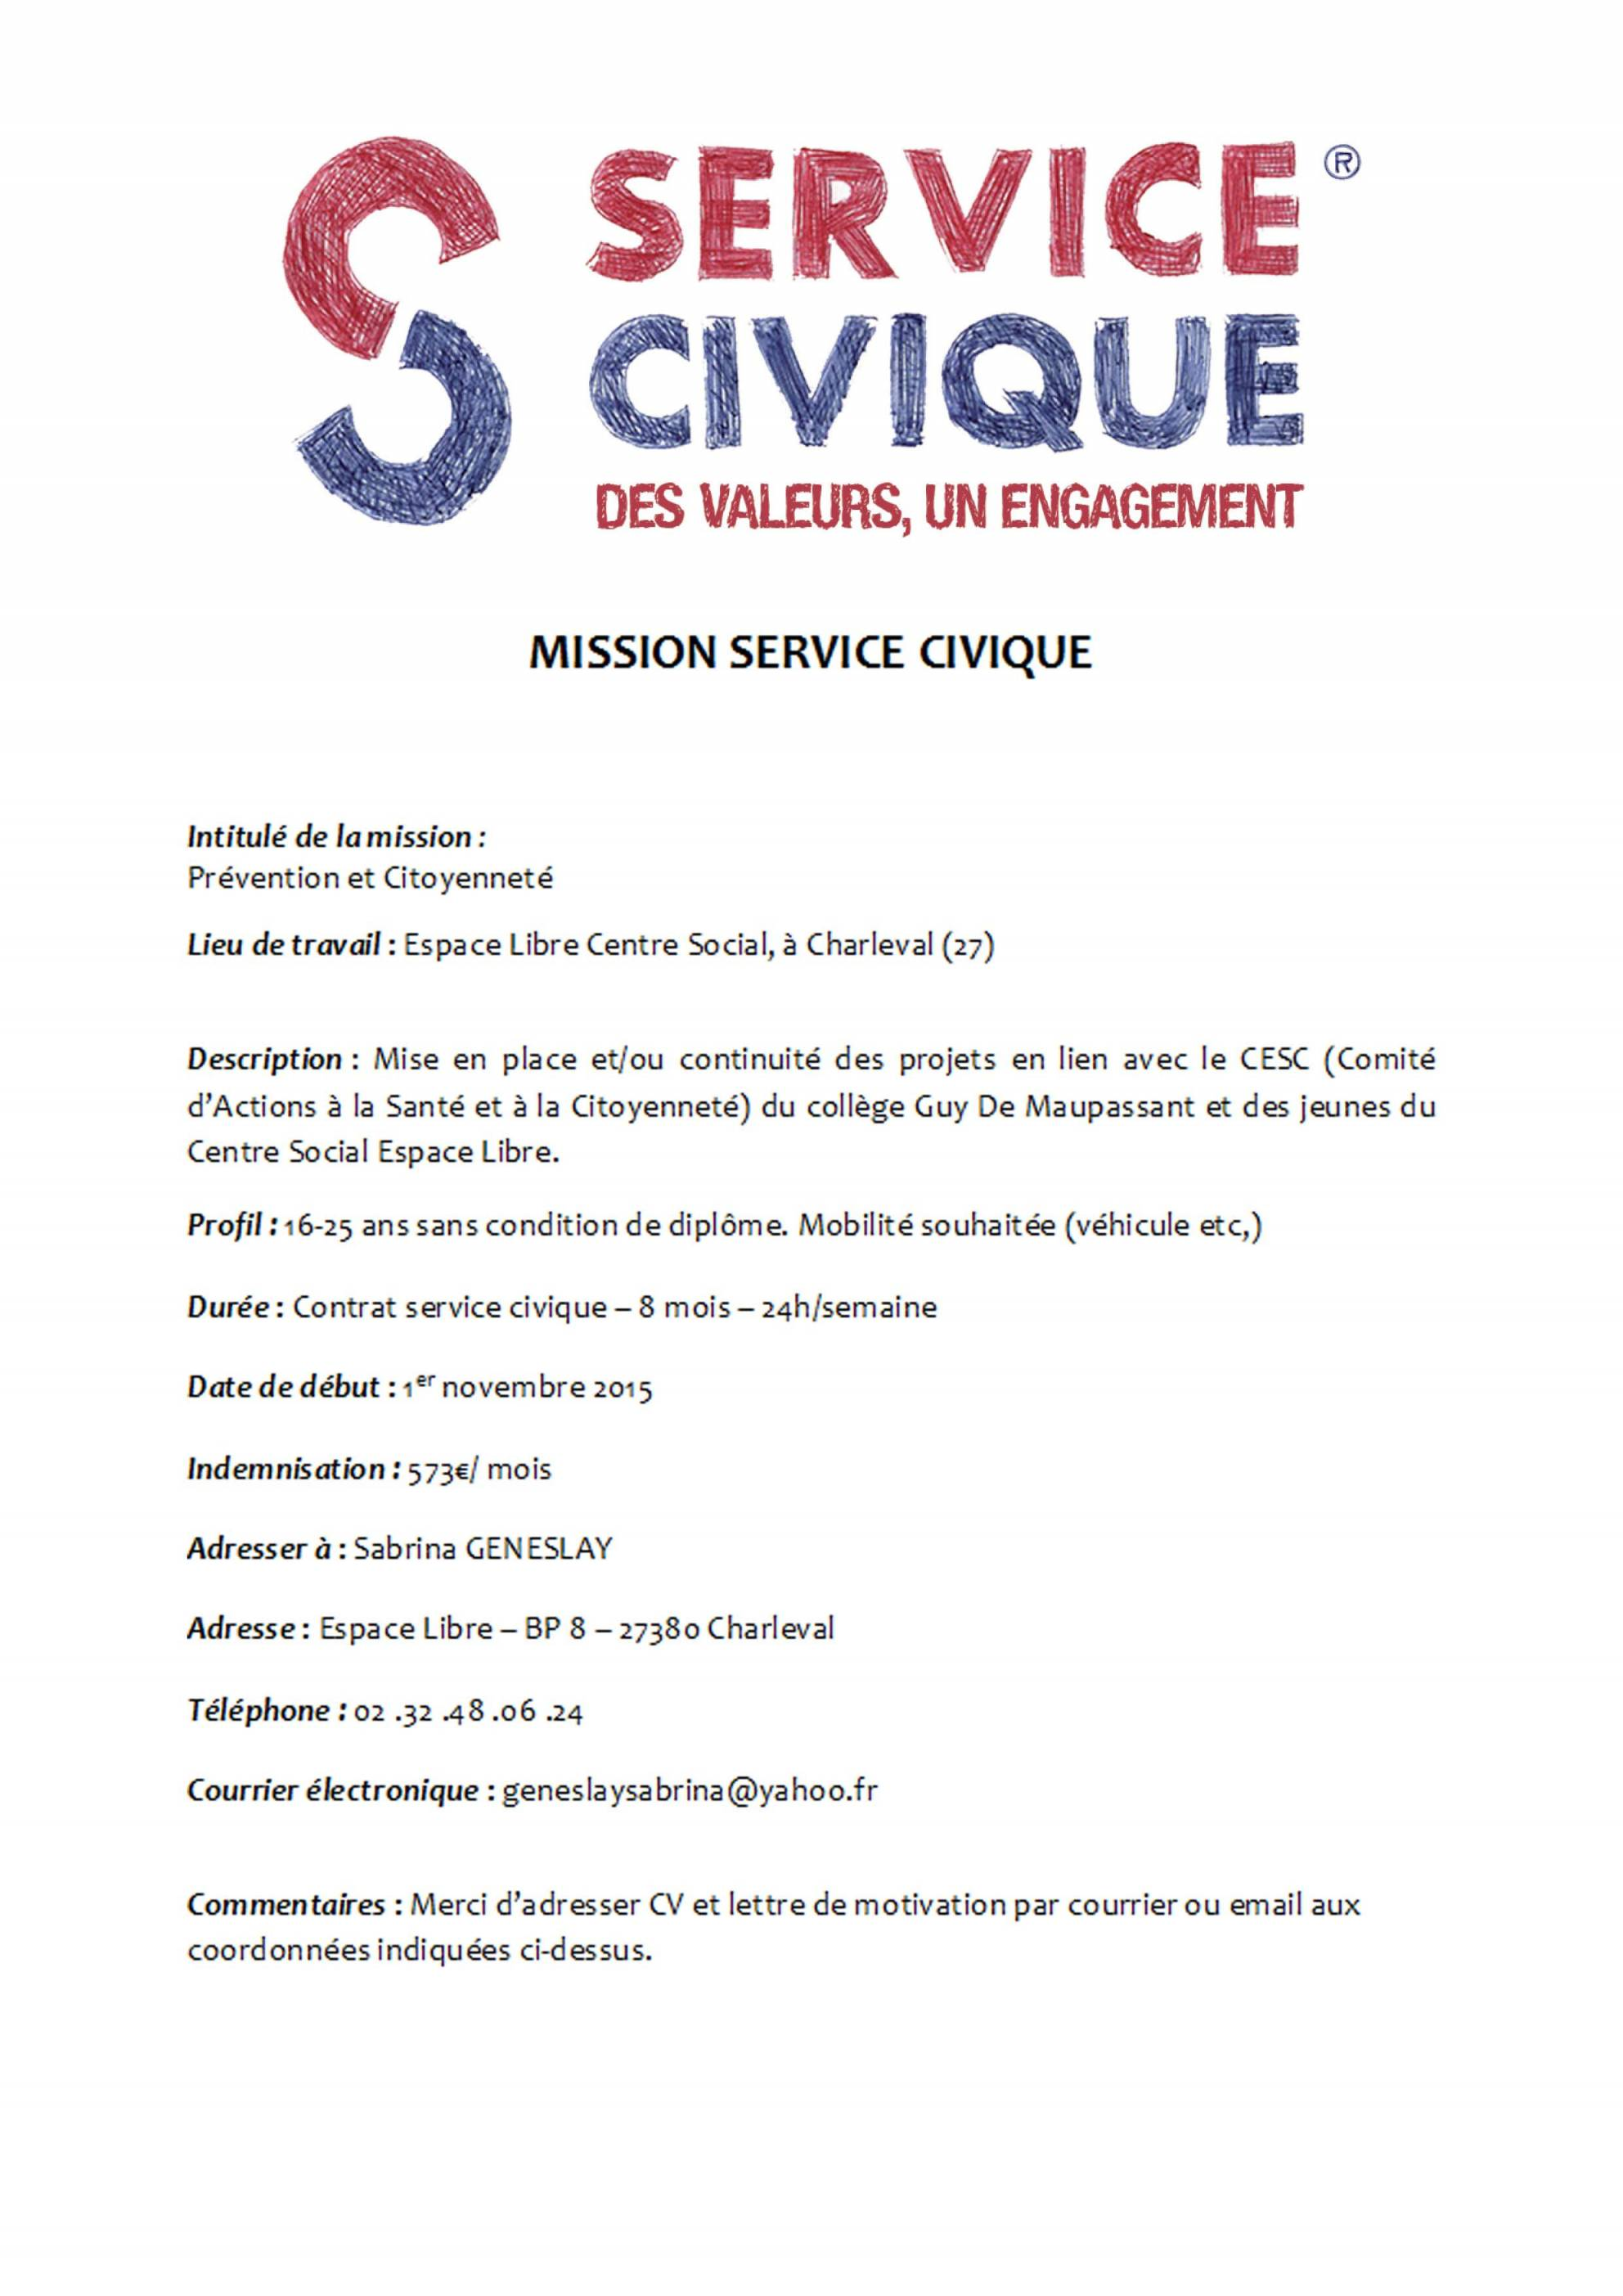 exemple de cv service civique